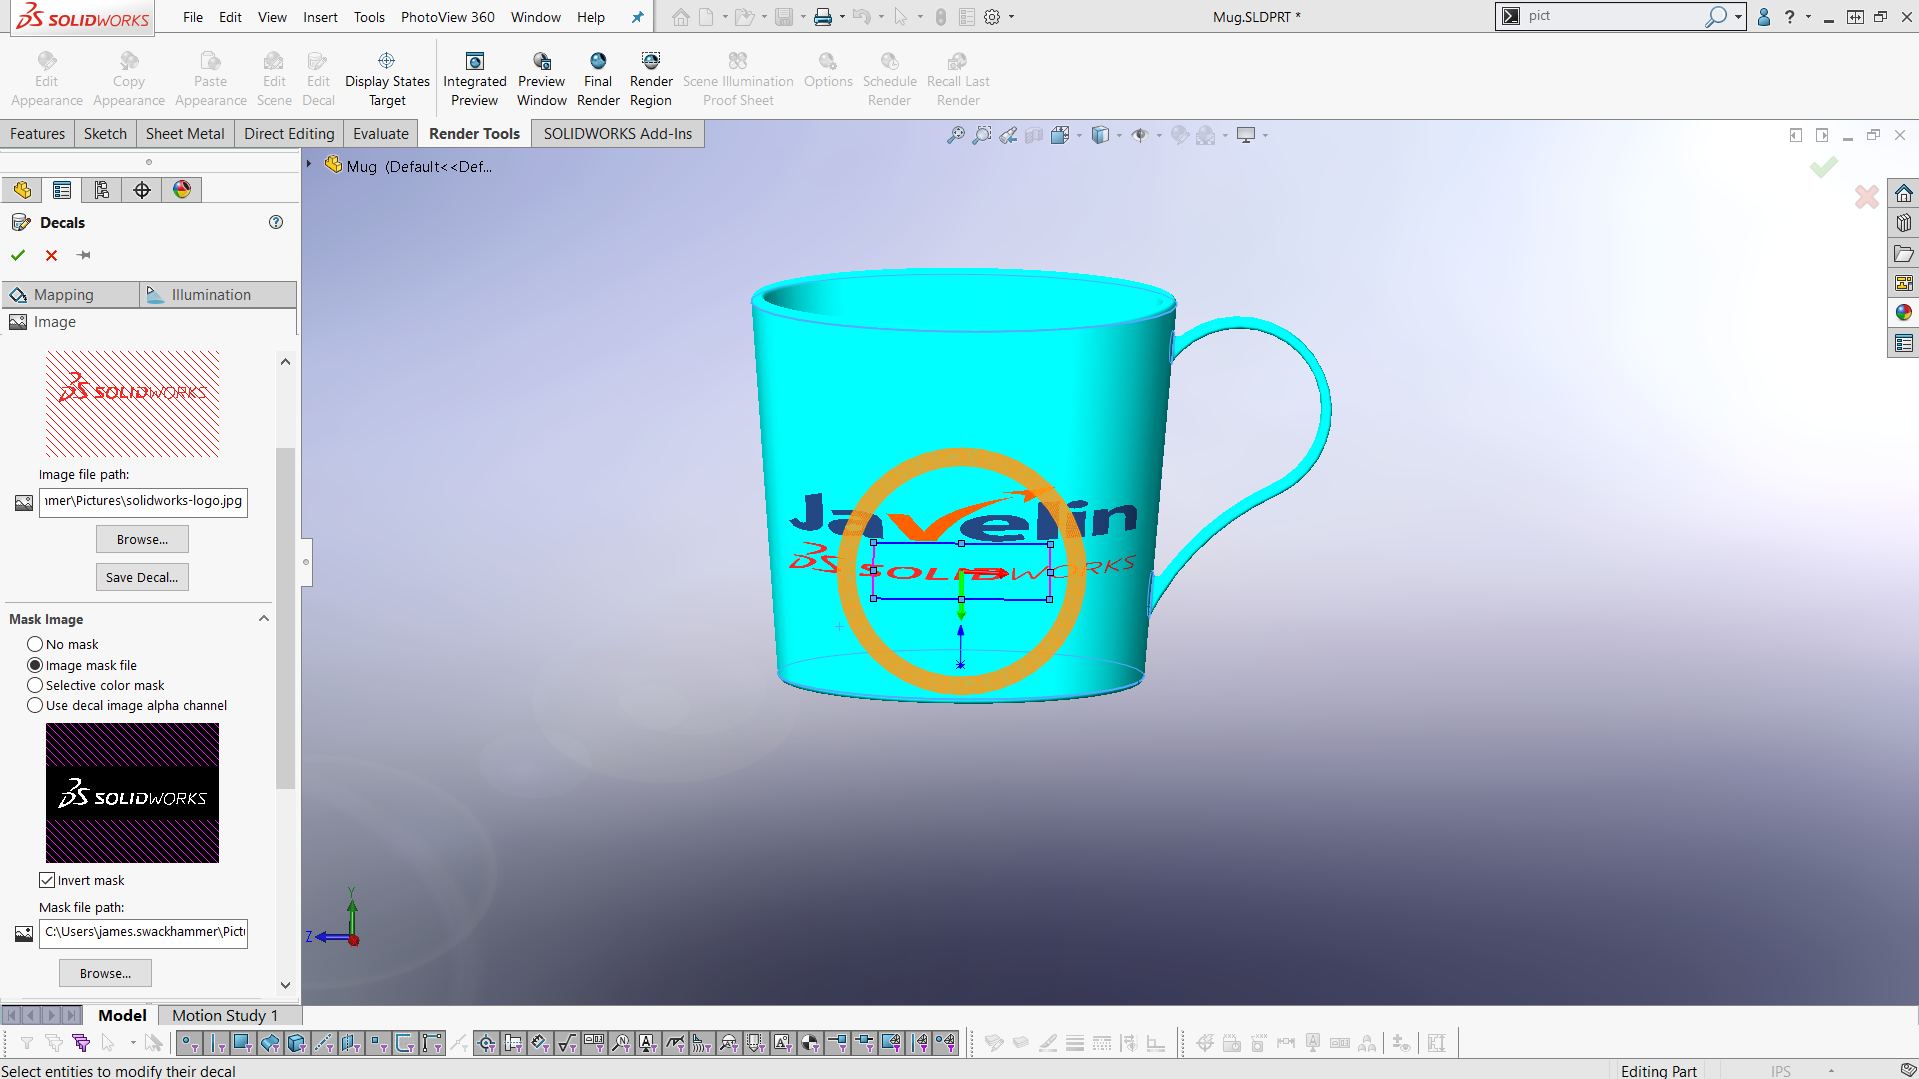 Applying Decals with Background Masking in SOLIDWORKS - Part 2